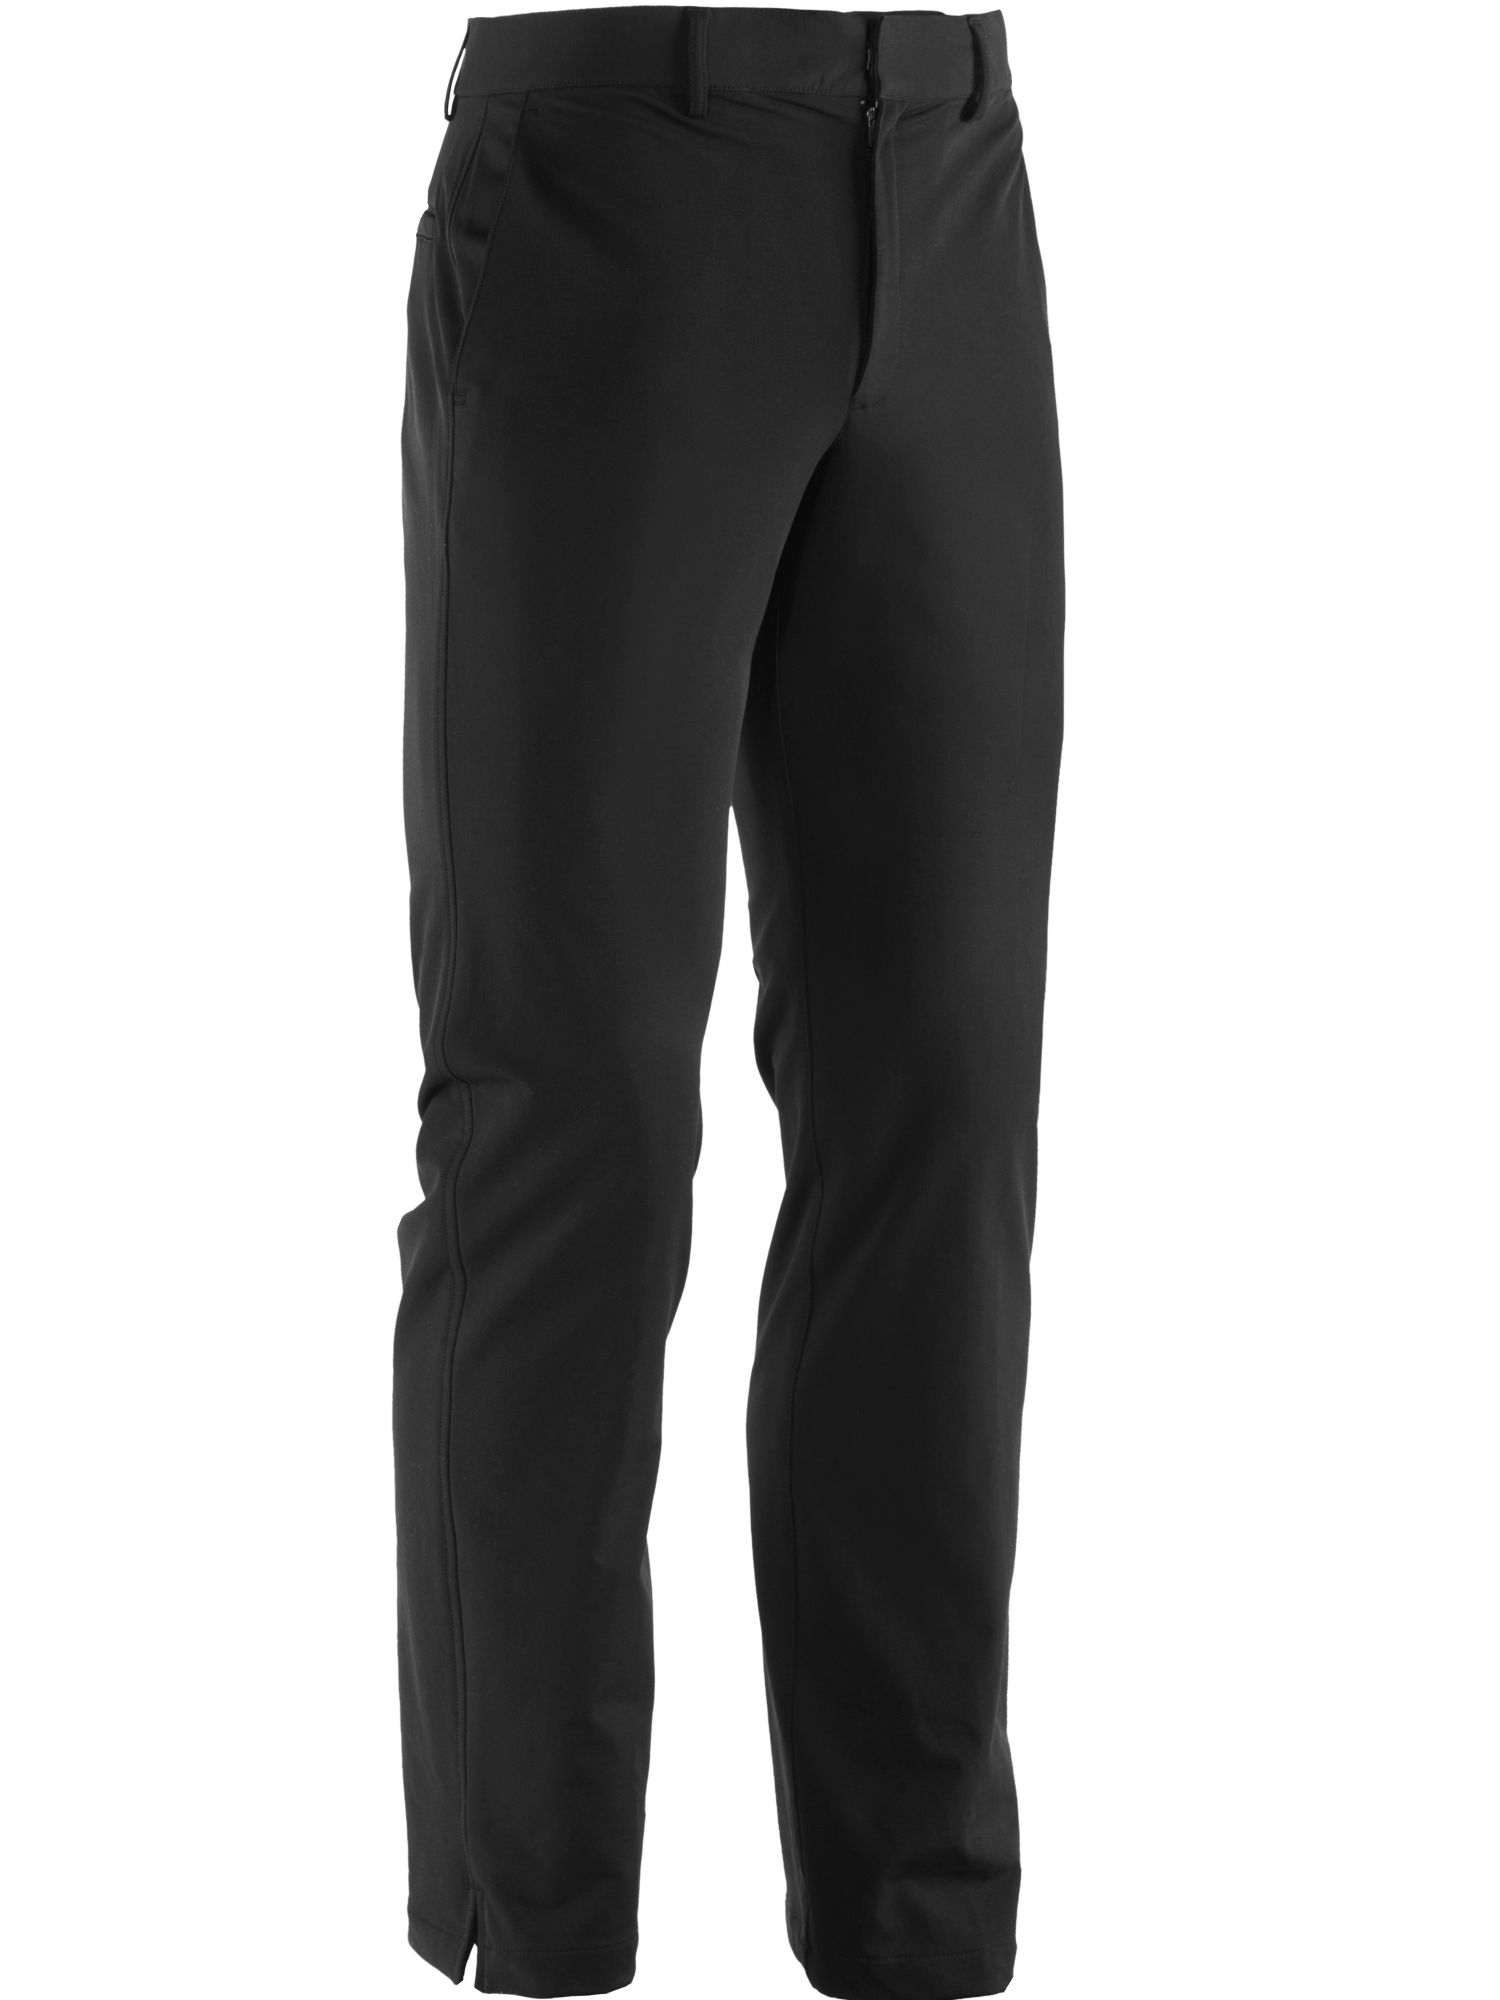 Elements coldgear storm trouser